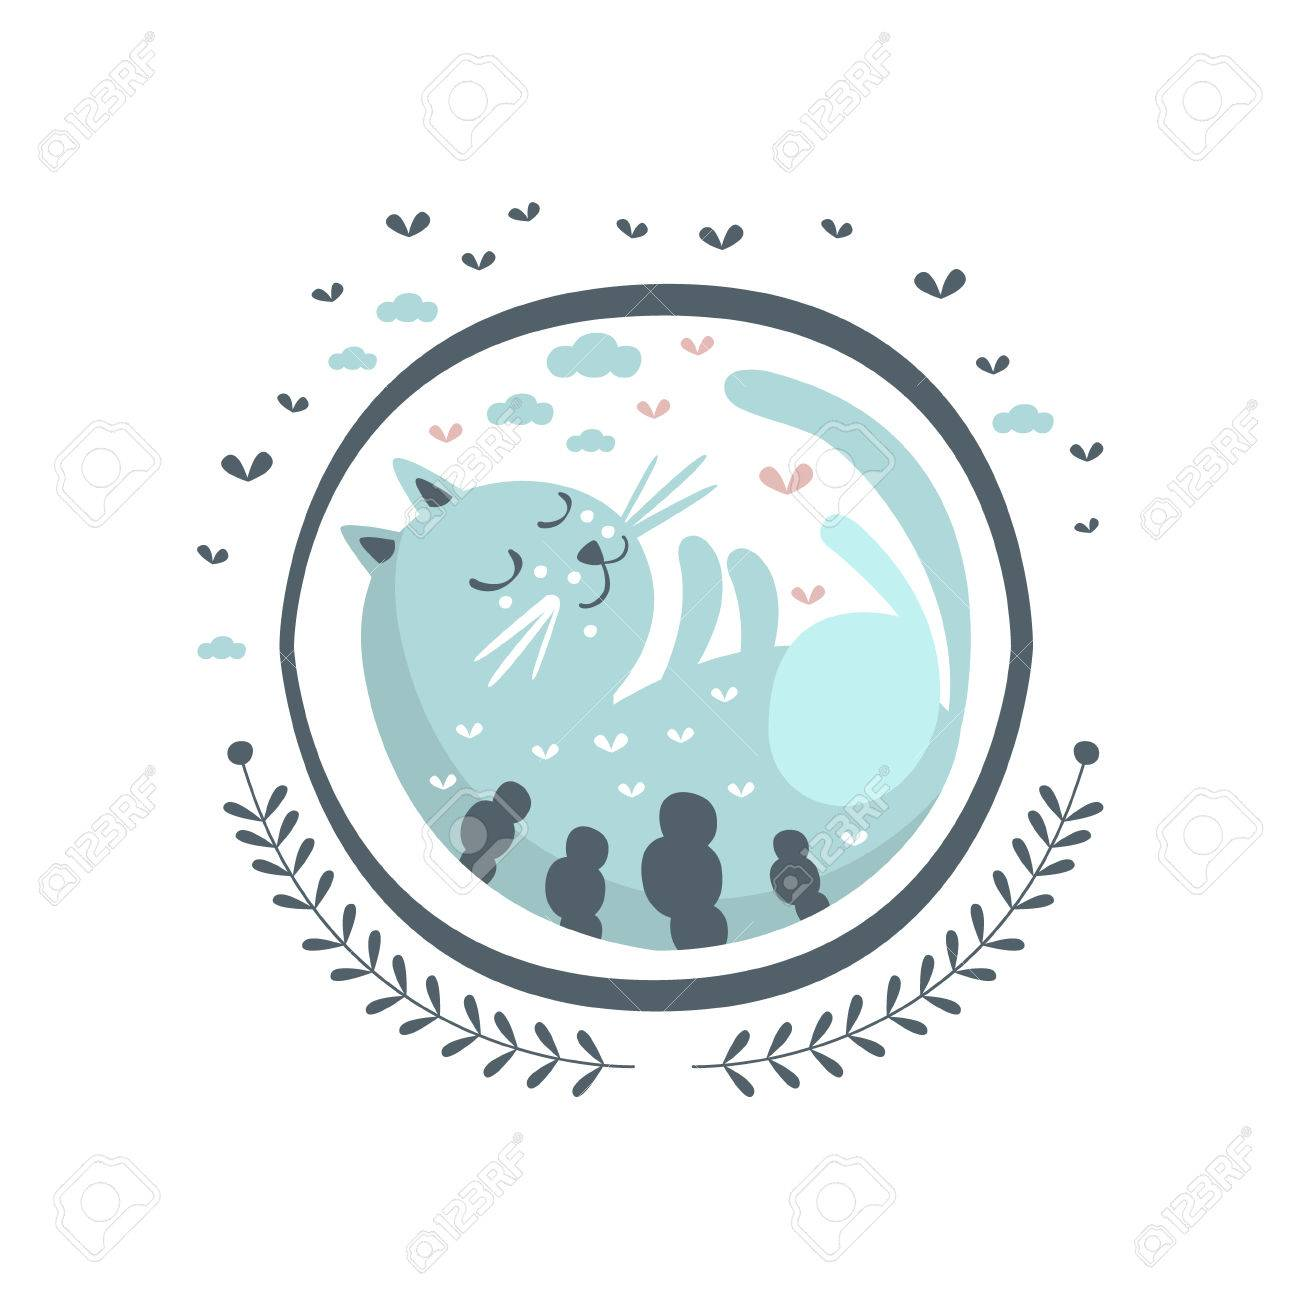 Blue Cat Fairy Tale Character Girly Sticker In Round Frame Childish Simple Design Isolated On